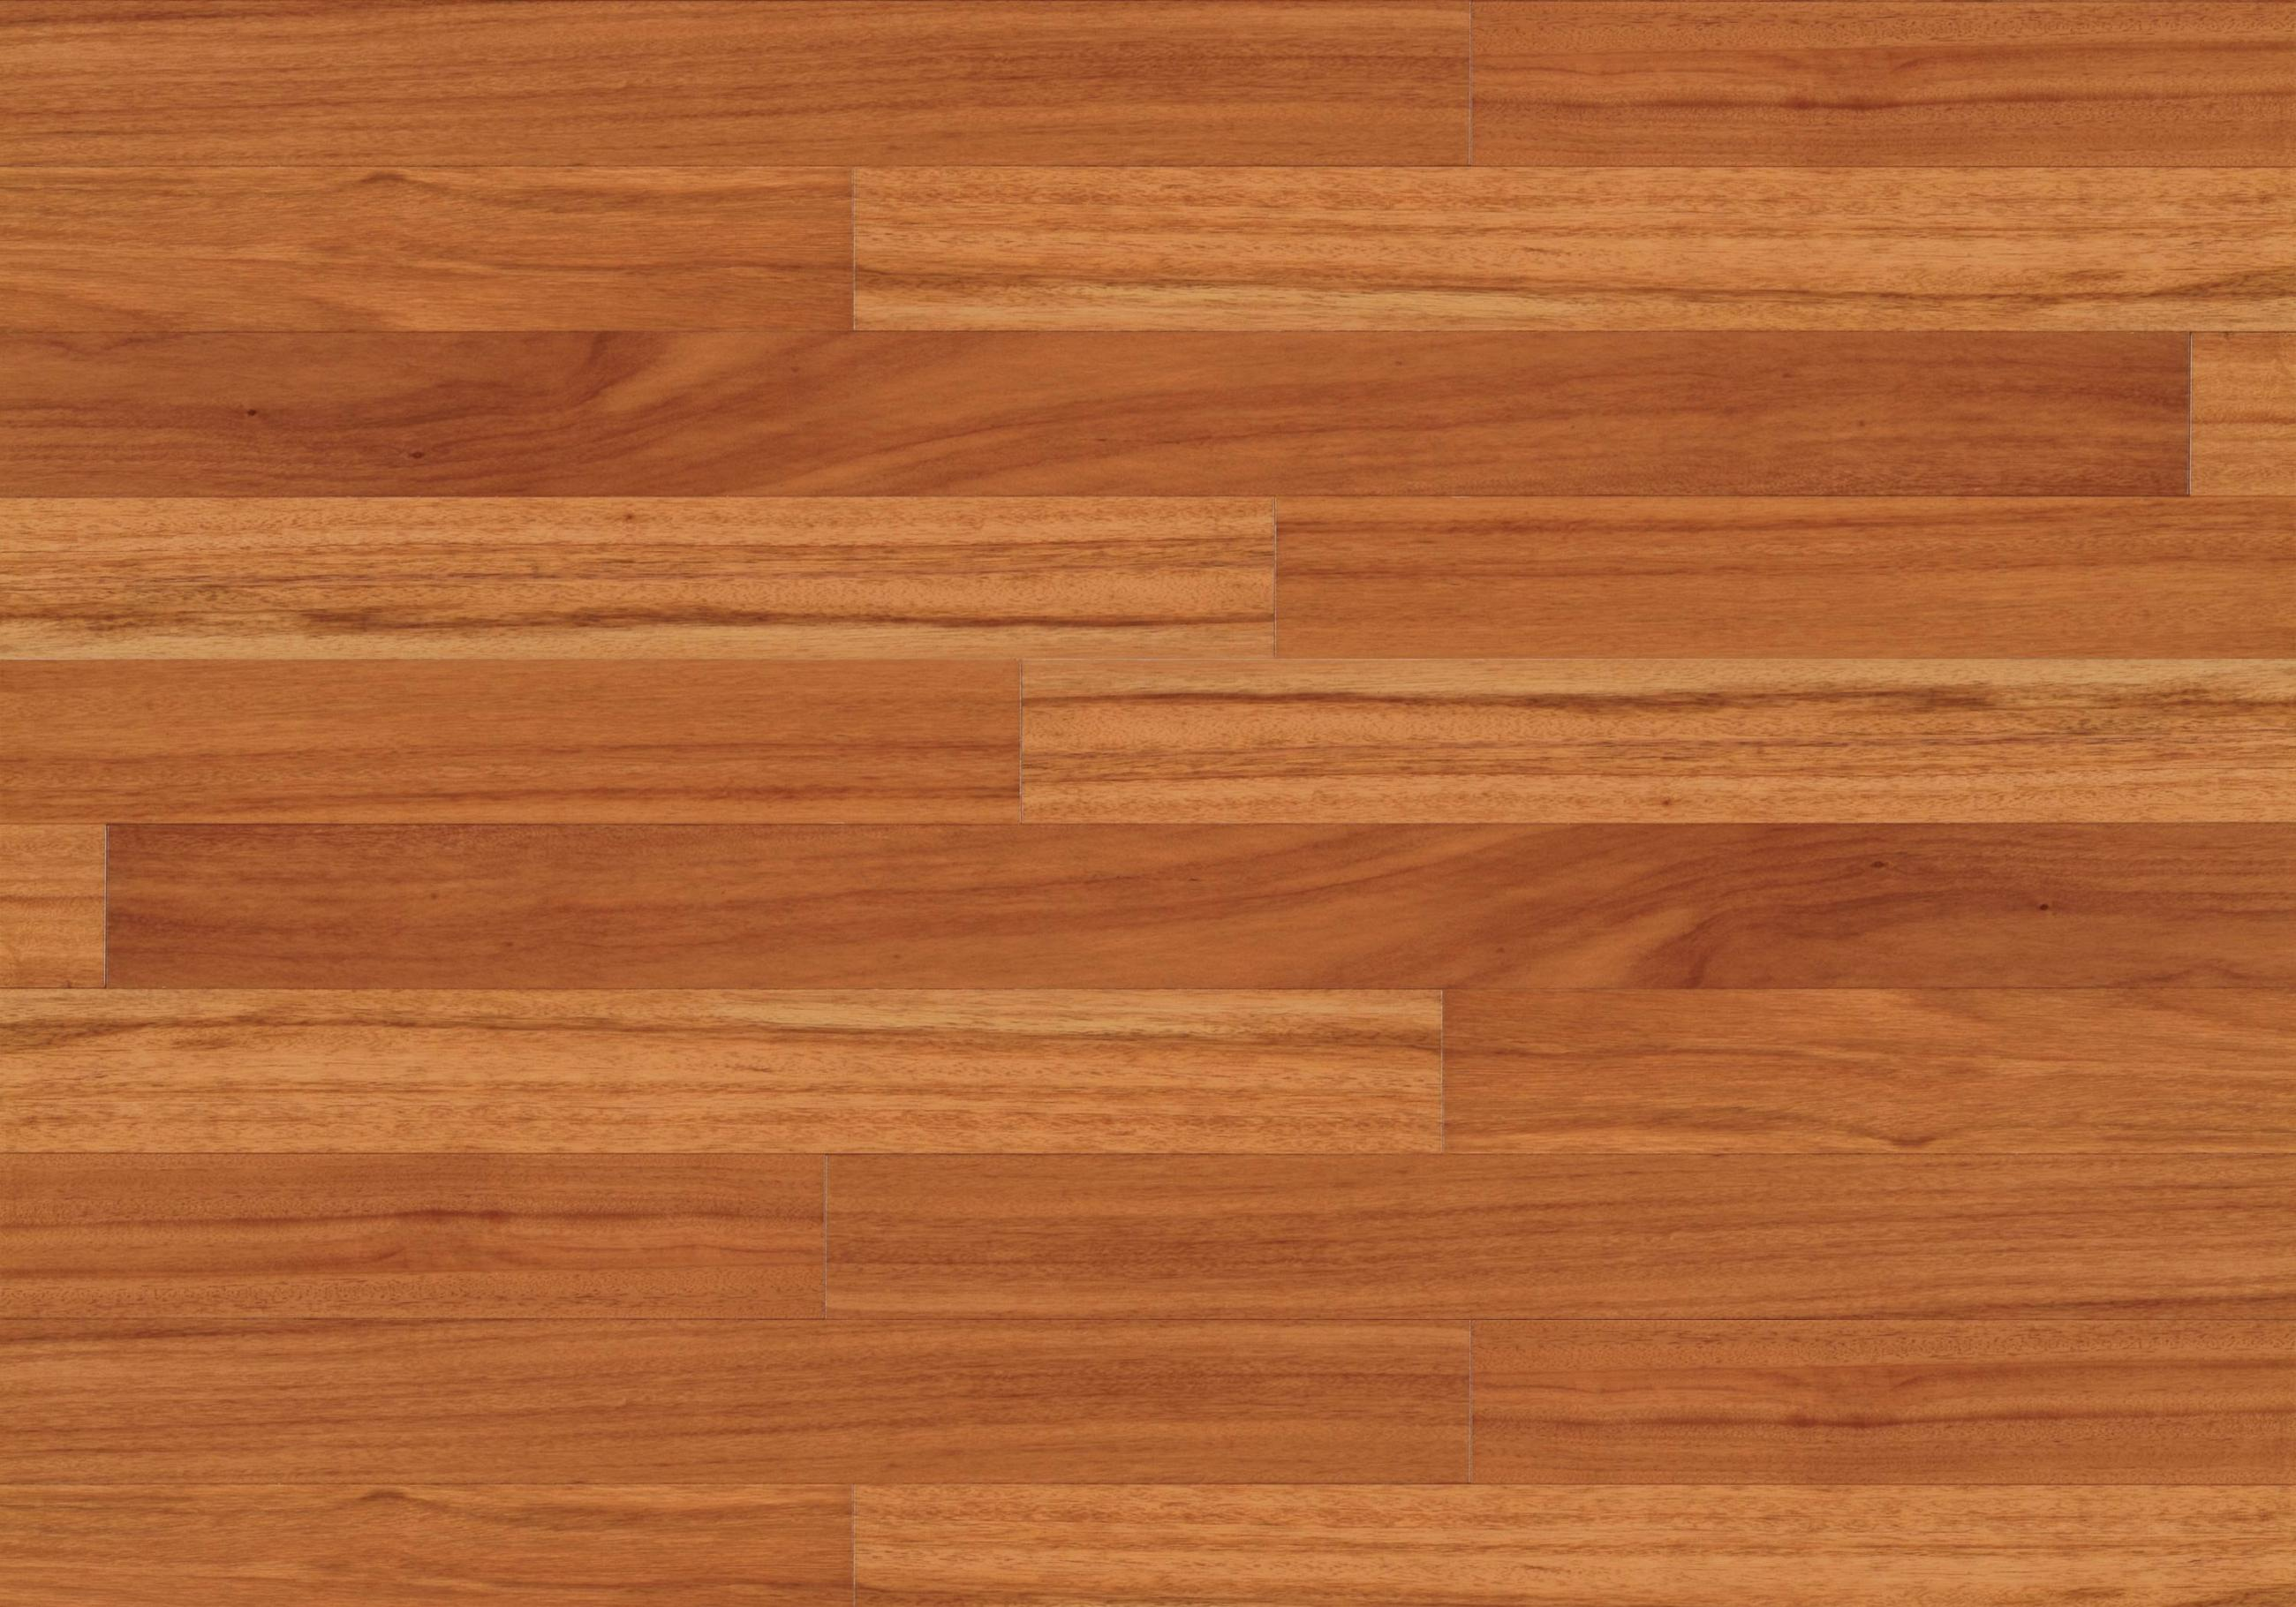 Engineered hardwood flooring specialty store in anaheim ca for Hardwood wood flooring